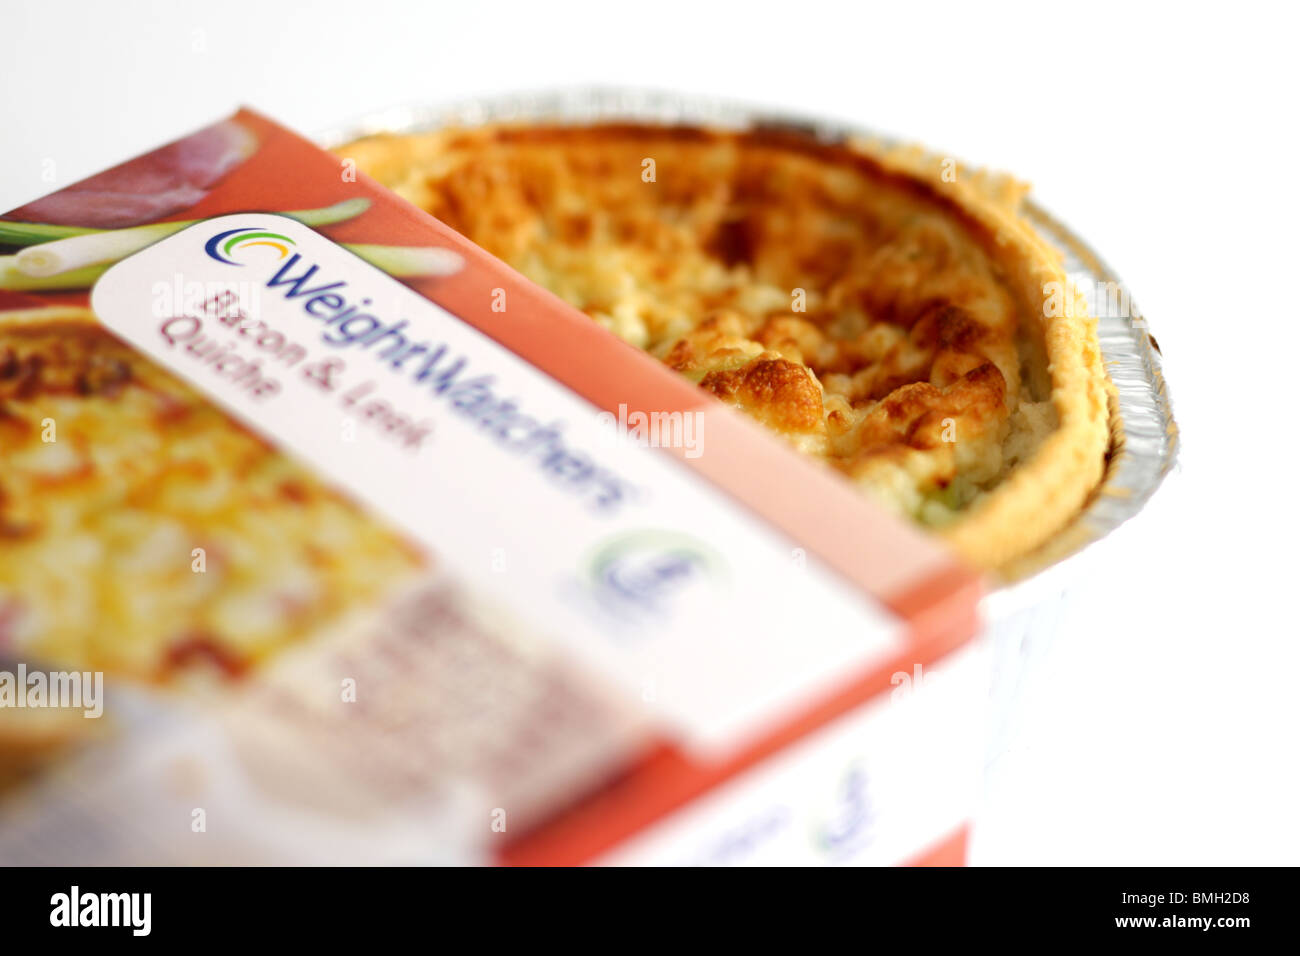 Weight Watchers Bacon and Leek Quiche - Stock Image